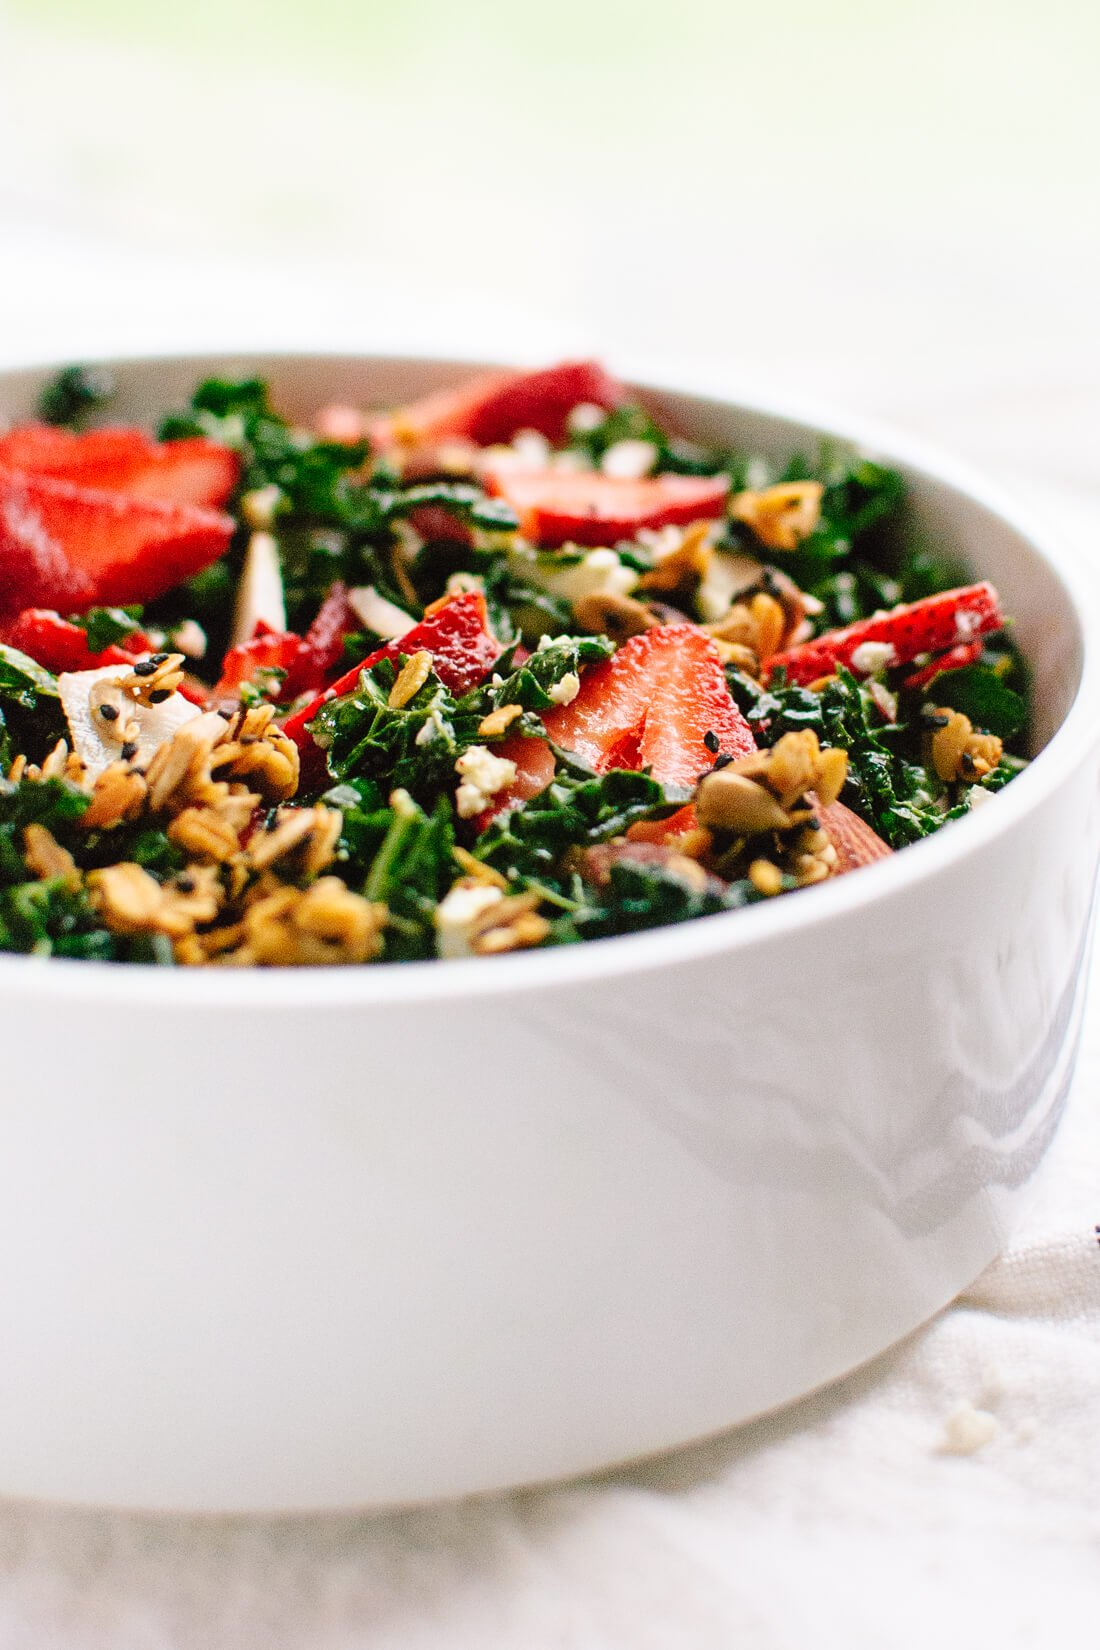 Strawberry Kale Salad with Nutty Granola Croutons